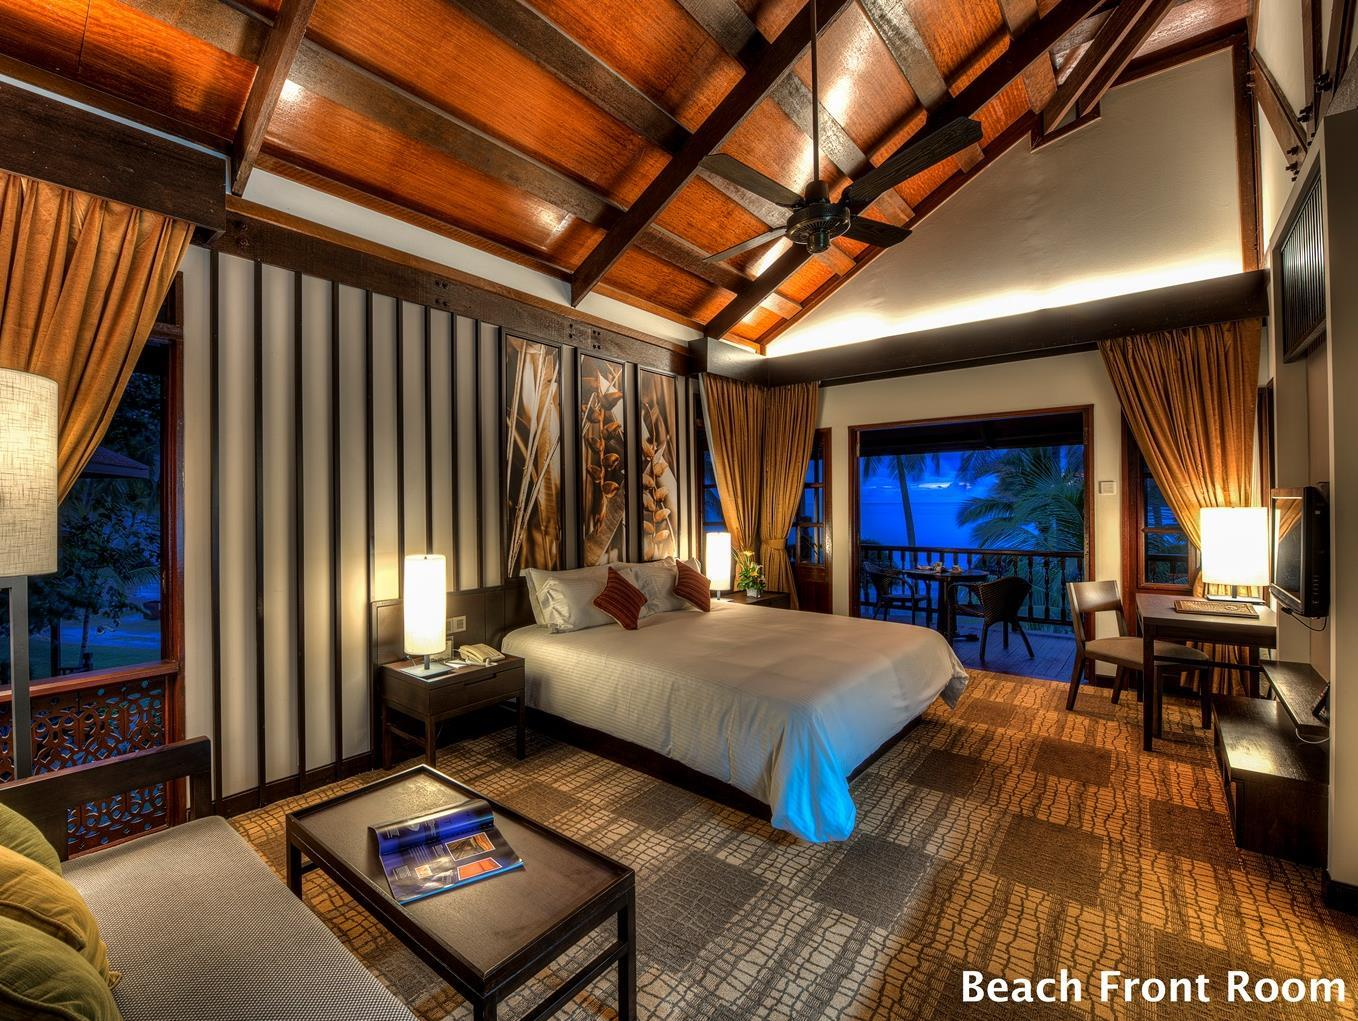 Meritus Pelangi Beach Resort & Spa17